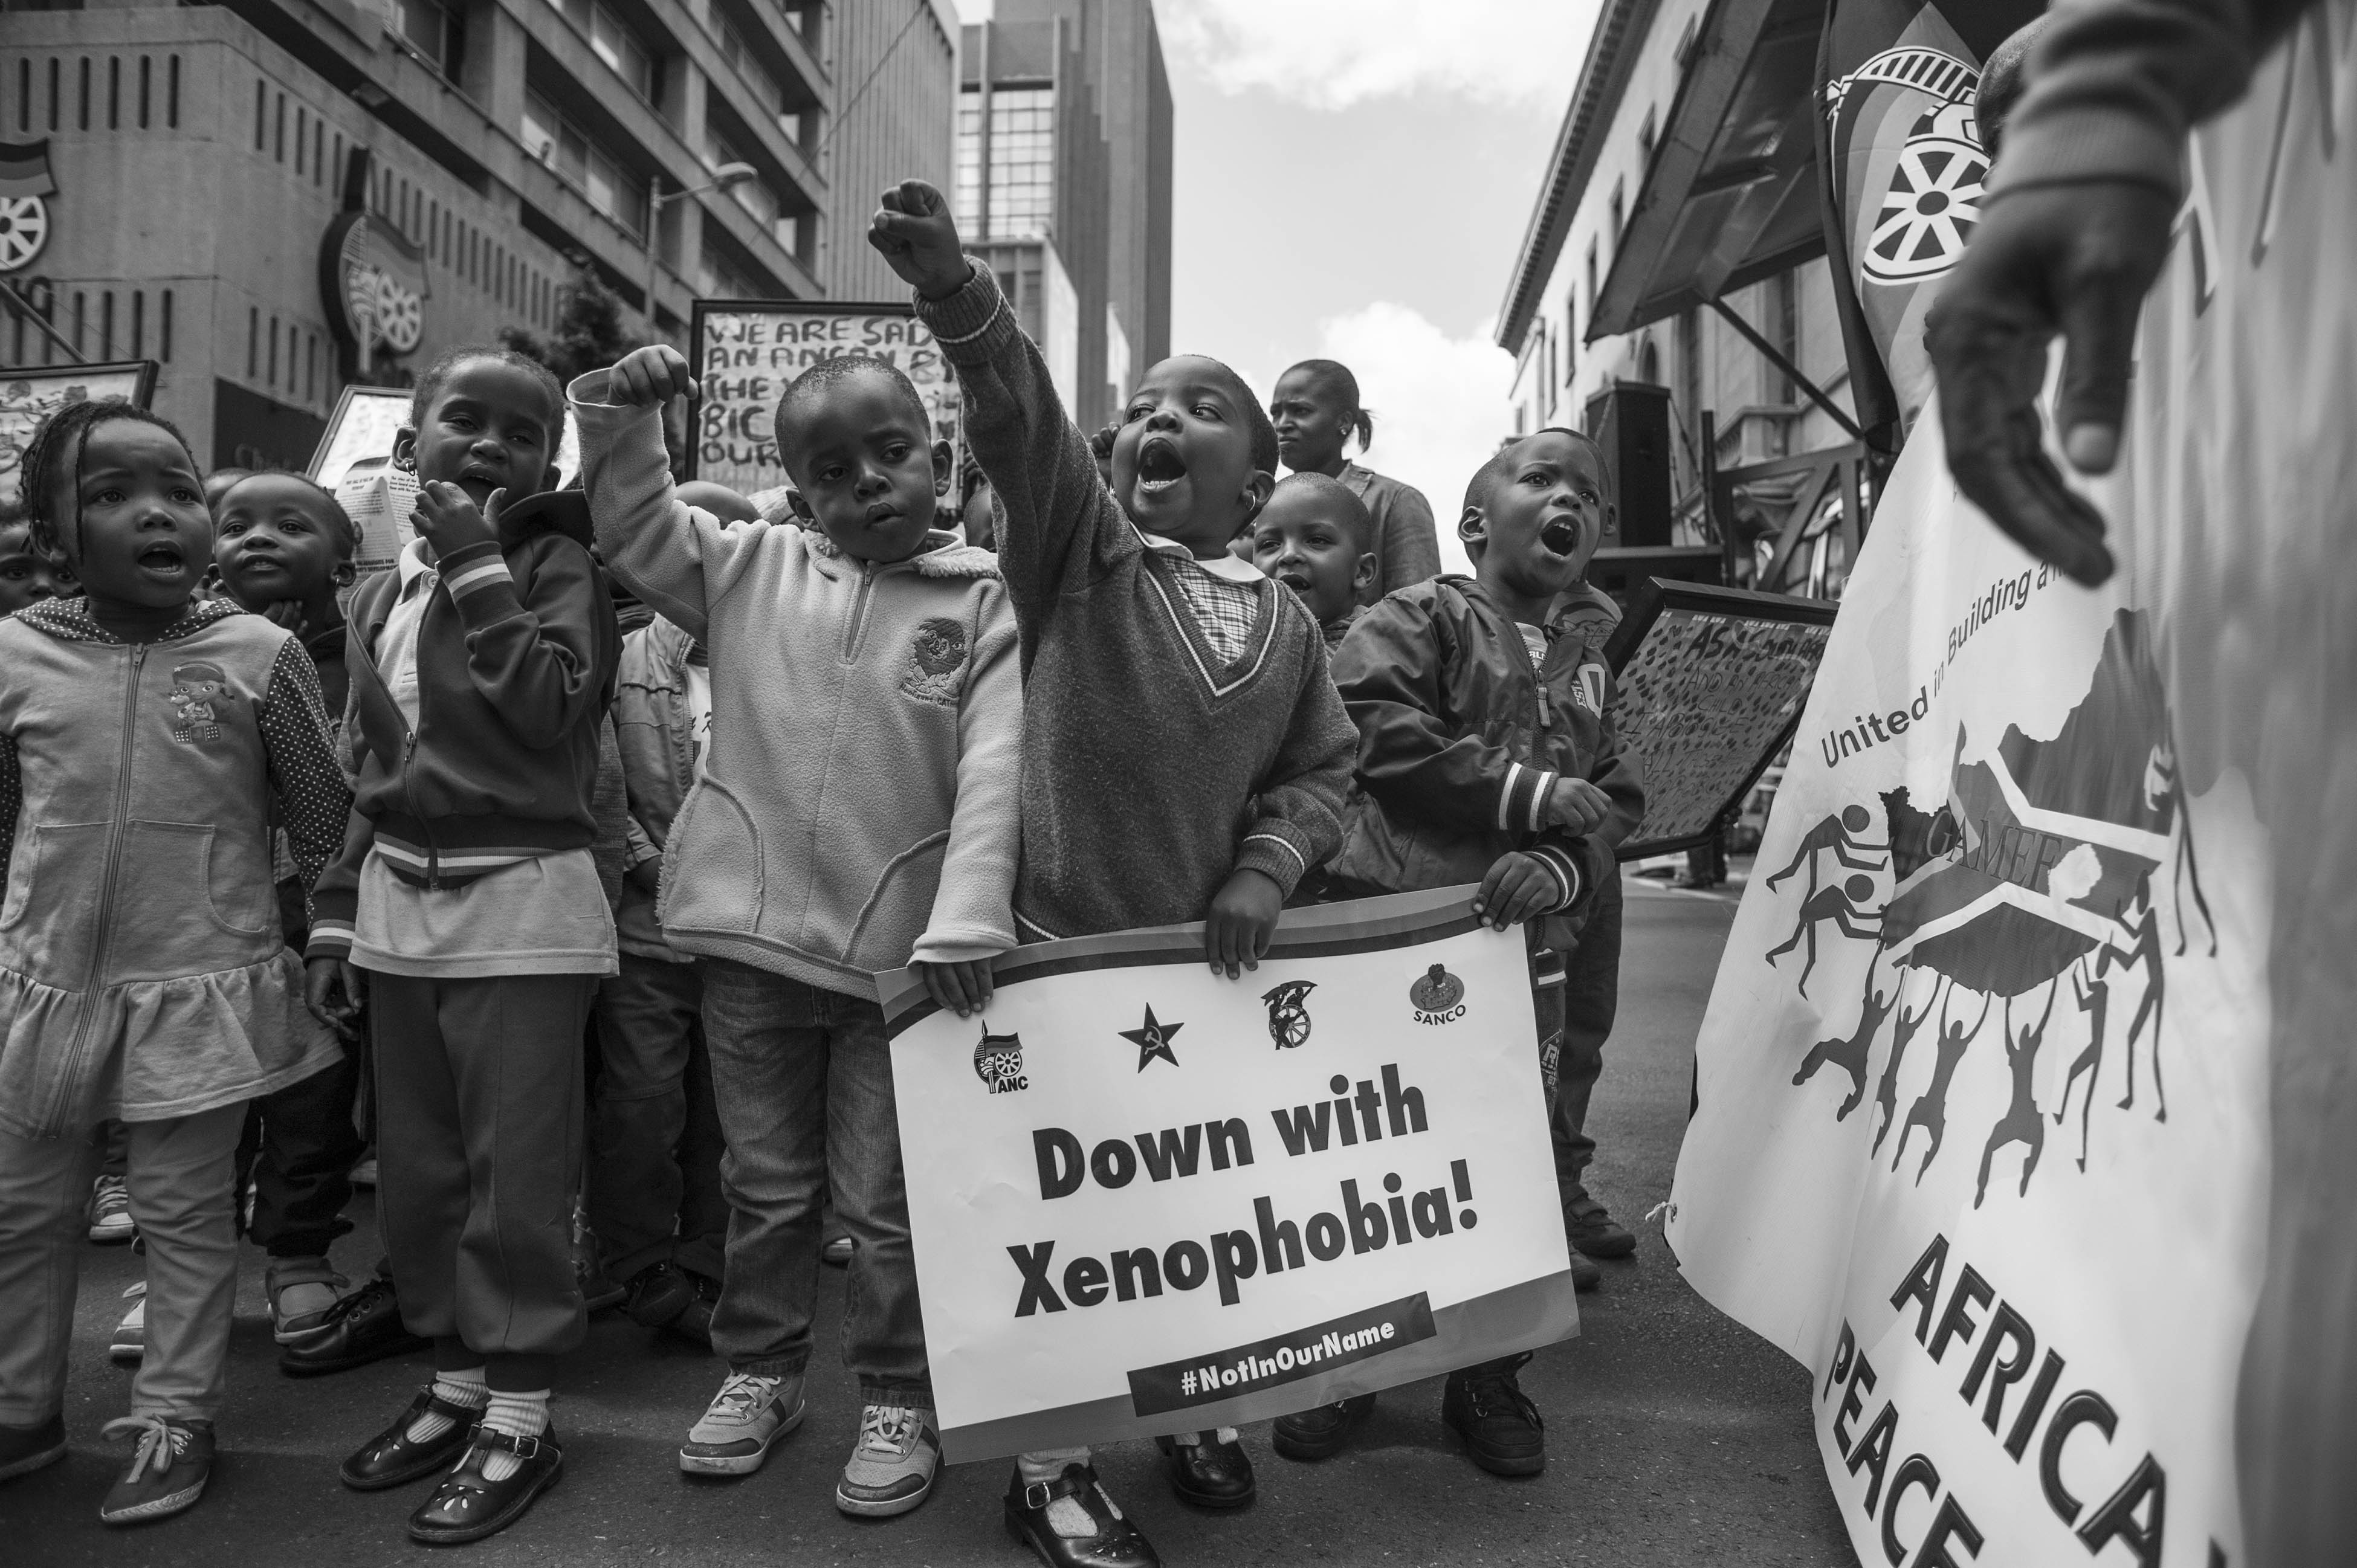 xenophobia the history of immigration progress Our xenophobic impulses and loftiest ideals have been in conflict since the  founding  but also from the beginning, anti-immigrant forces had to contend   with great effort, activists managed to redefine refugee status in us.